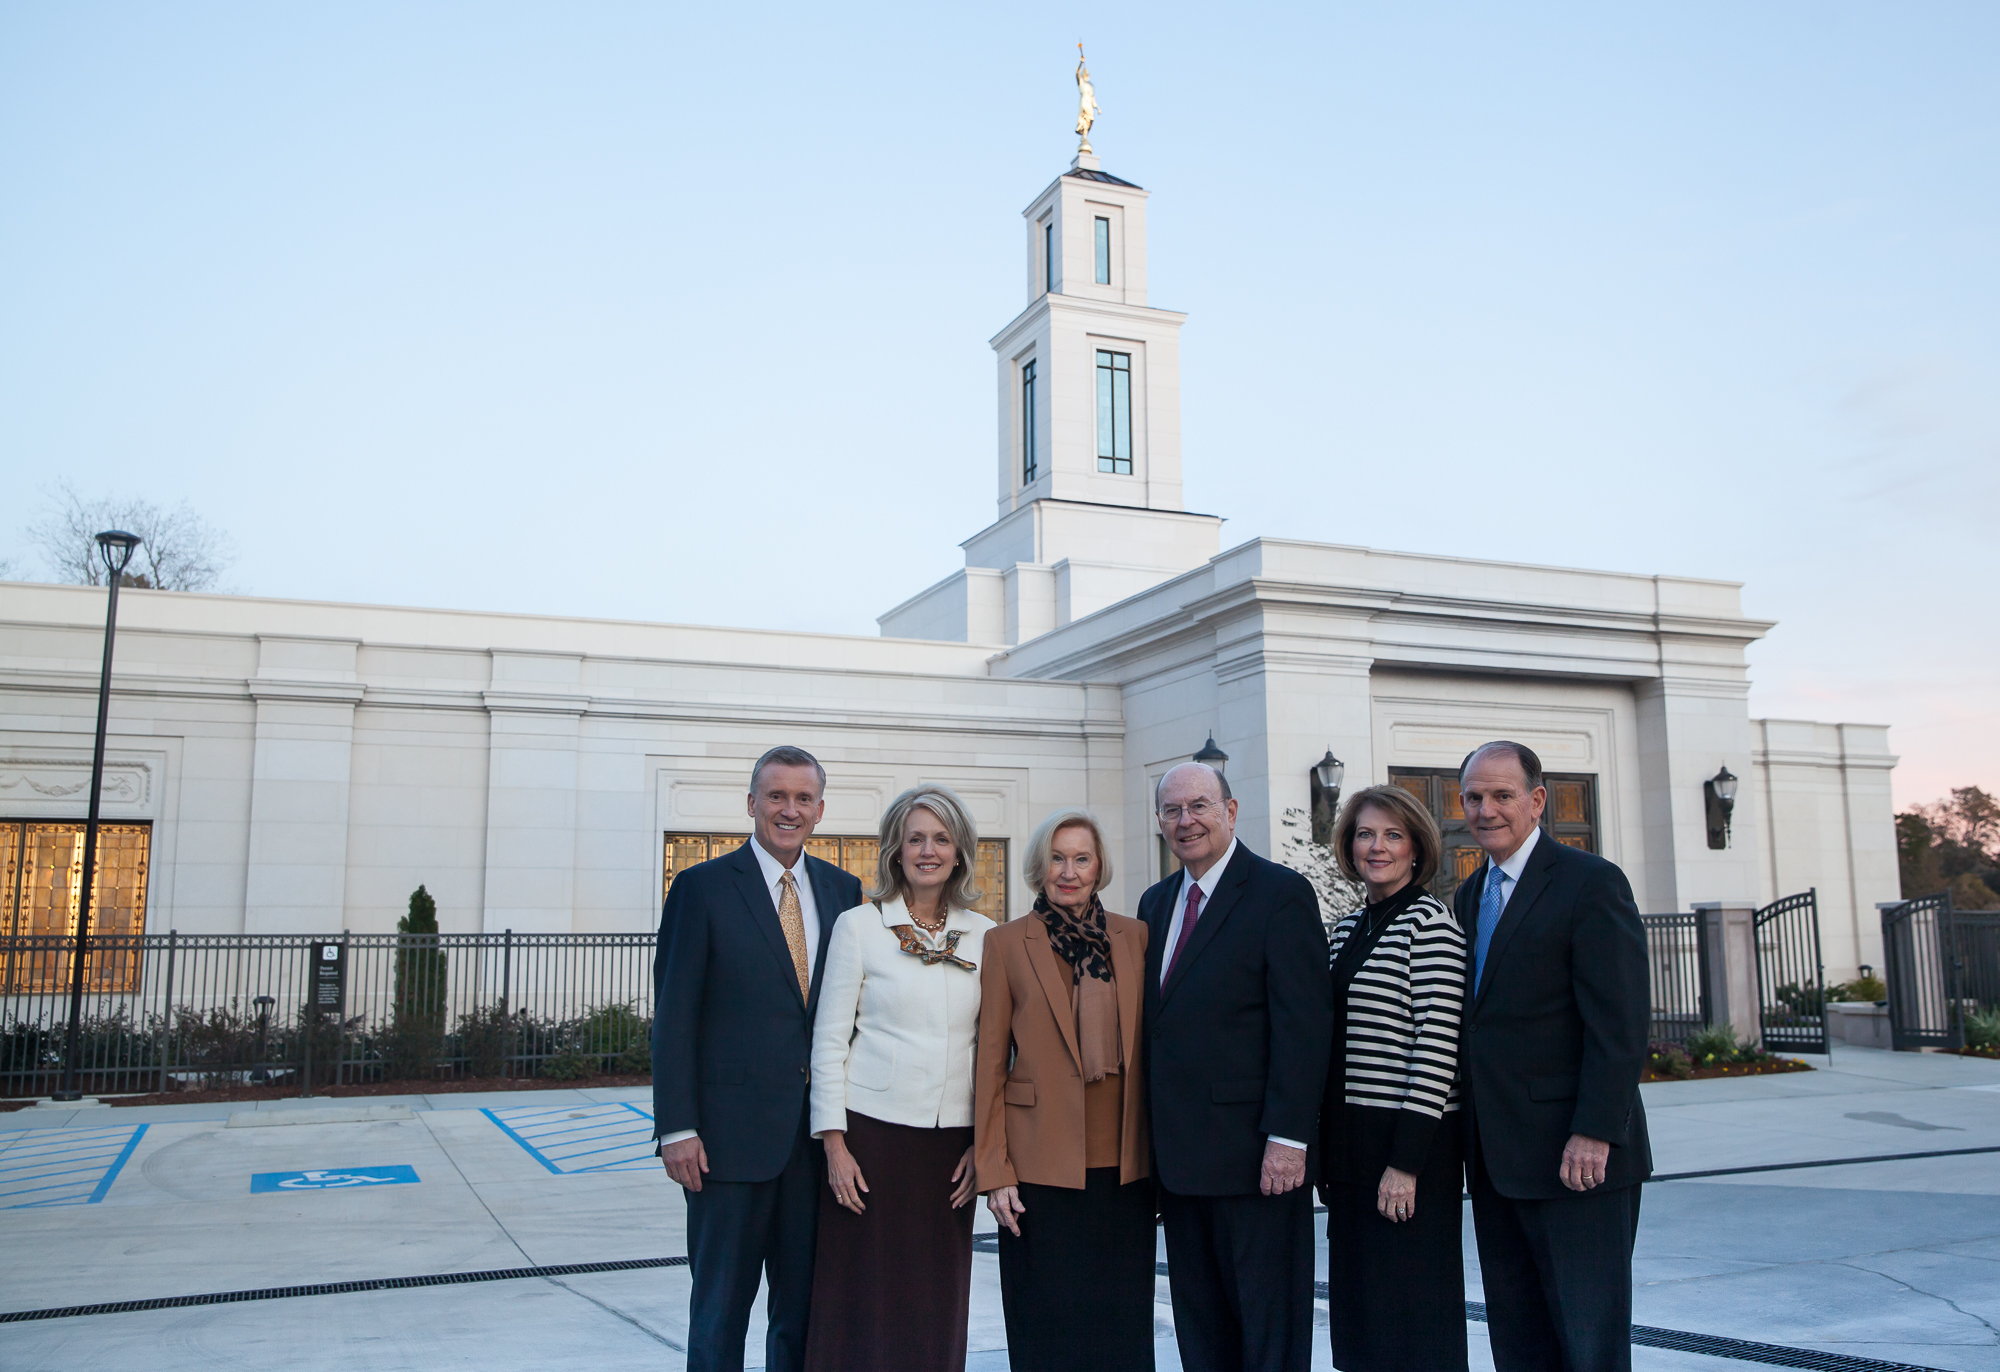 Elder Quentin L. Cook of the Quorum of the Twelve Apostles, center right, stands in front of the Baton Rouge Louisiana Temple with his wife, Sister Mary Cook, center left; Elder Kevin R. Duncan, General Authority Seventy and executive director of the Church's Temple Department, and his wife, Sister Nancy Duncan, left; and Elder James B. Martino, General Authority Seventy and president of the North America Southeast Area, and his wife, Sister Jennie B. Martino, right, on Saturday, Nov. 16, 2019.